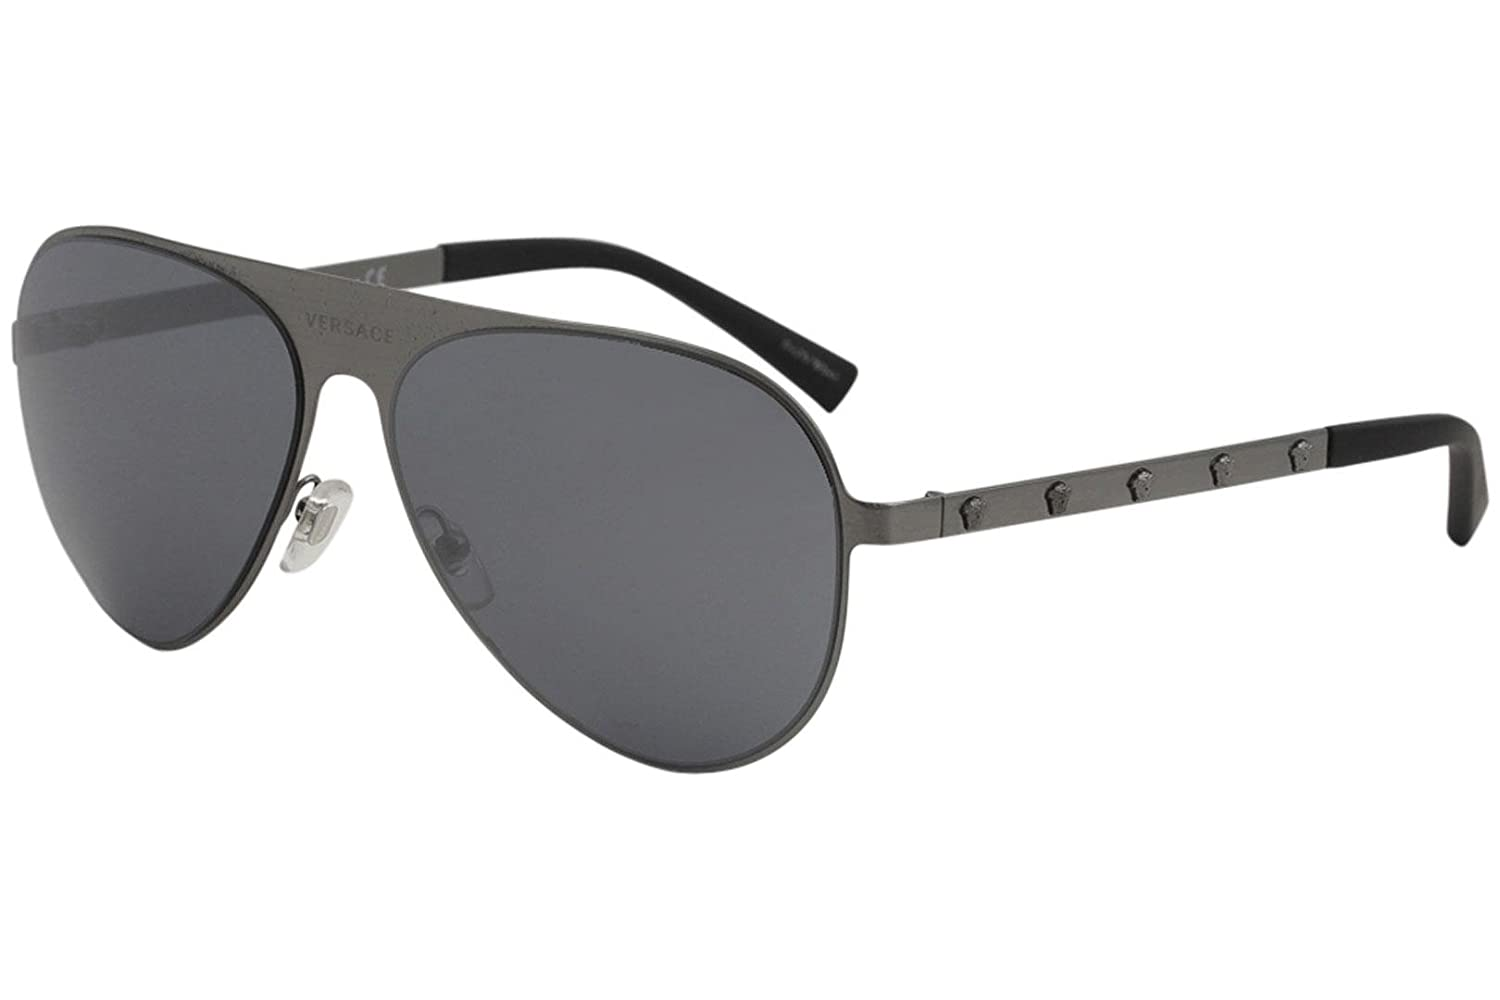 094d6dade2 Amazon.com  Versace Unisex VE2189 Brushed Gunmetal Grey Mirror Black One  Size  Clothing